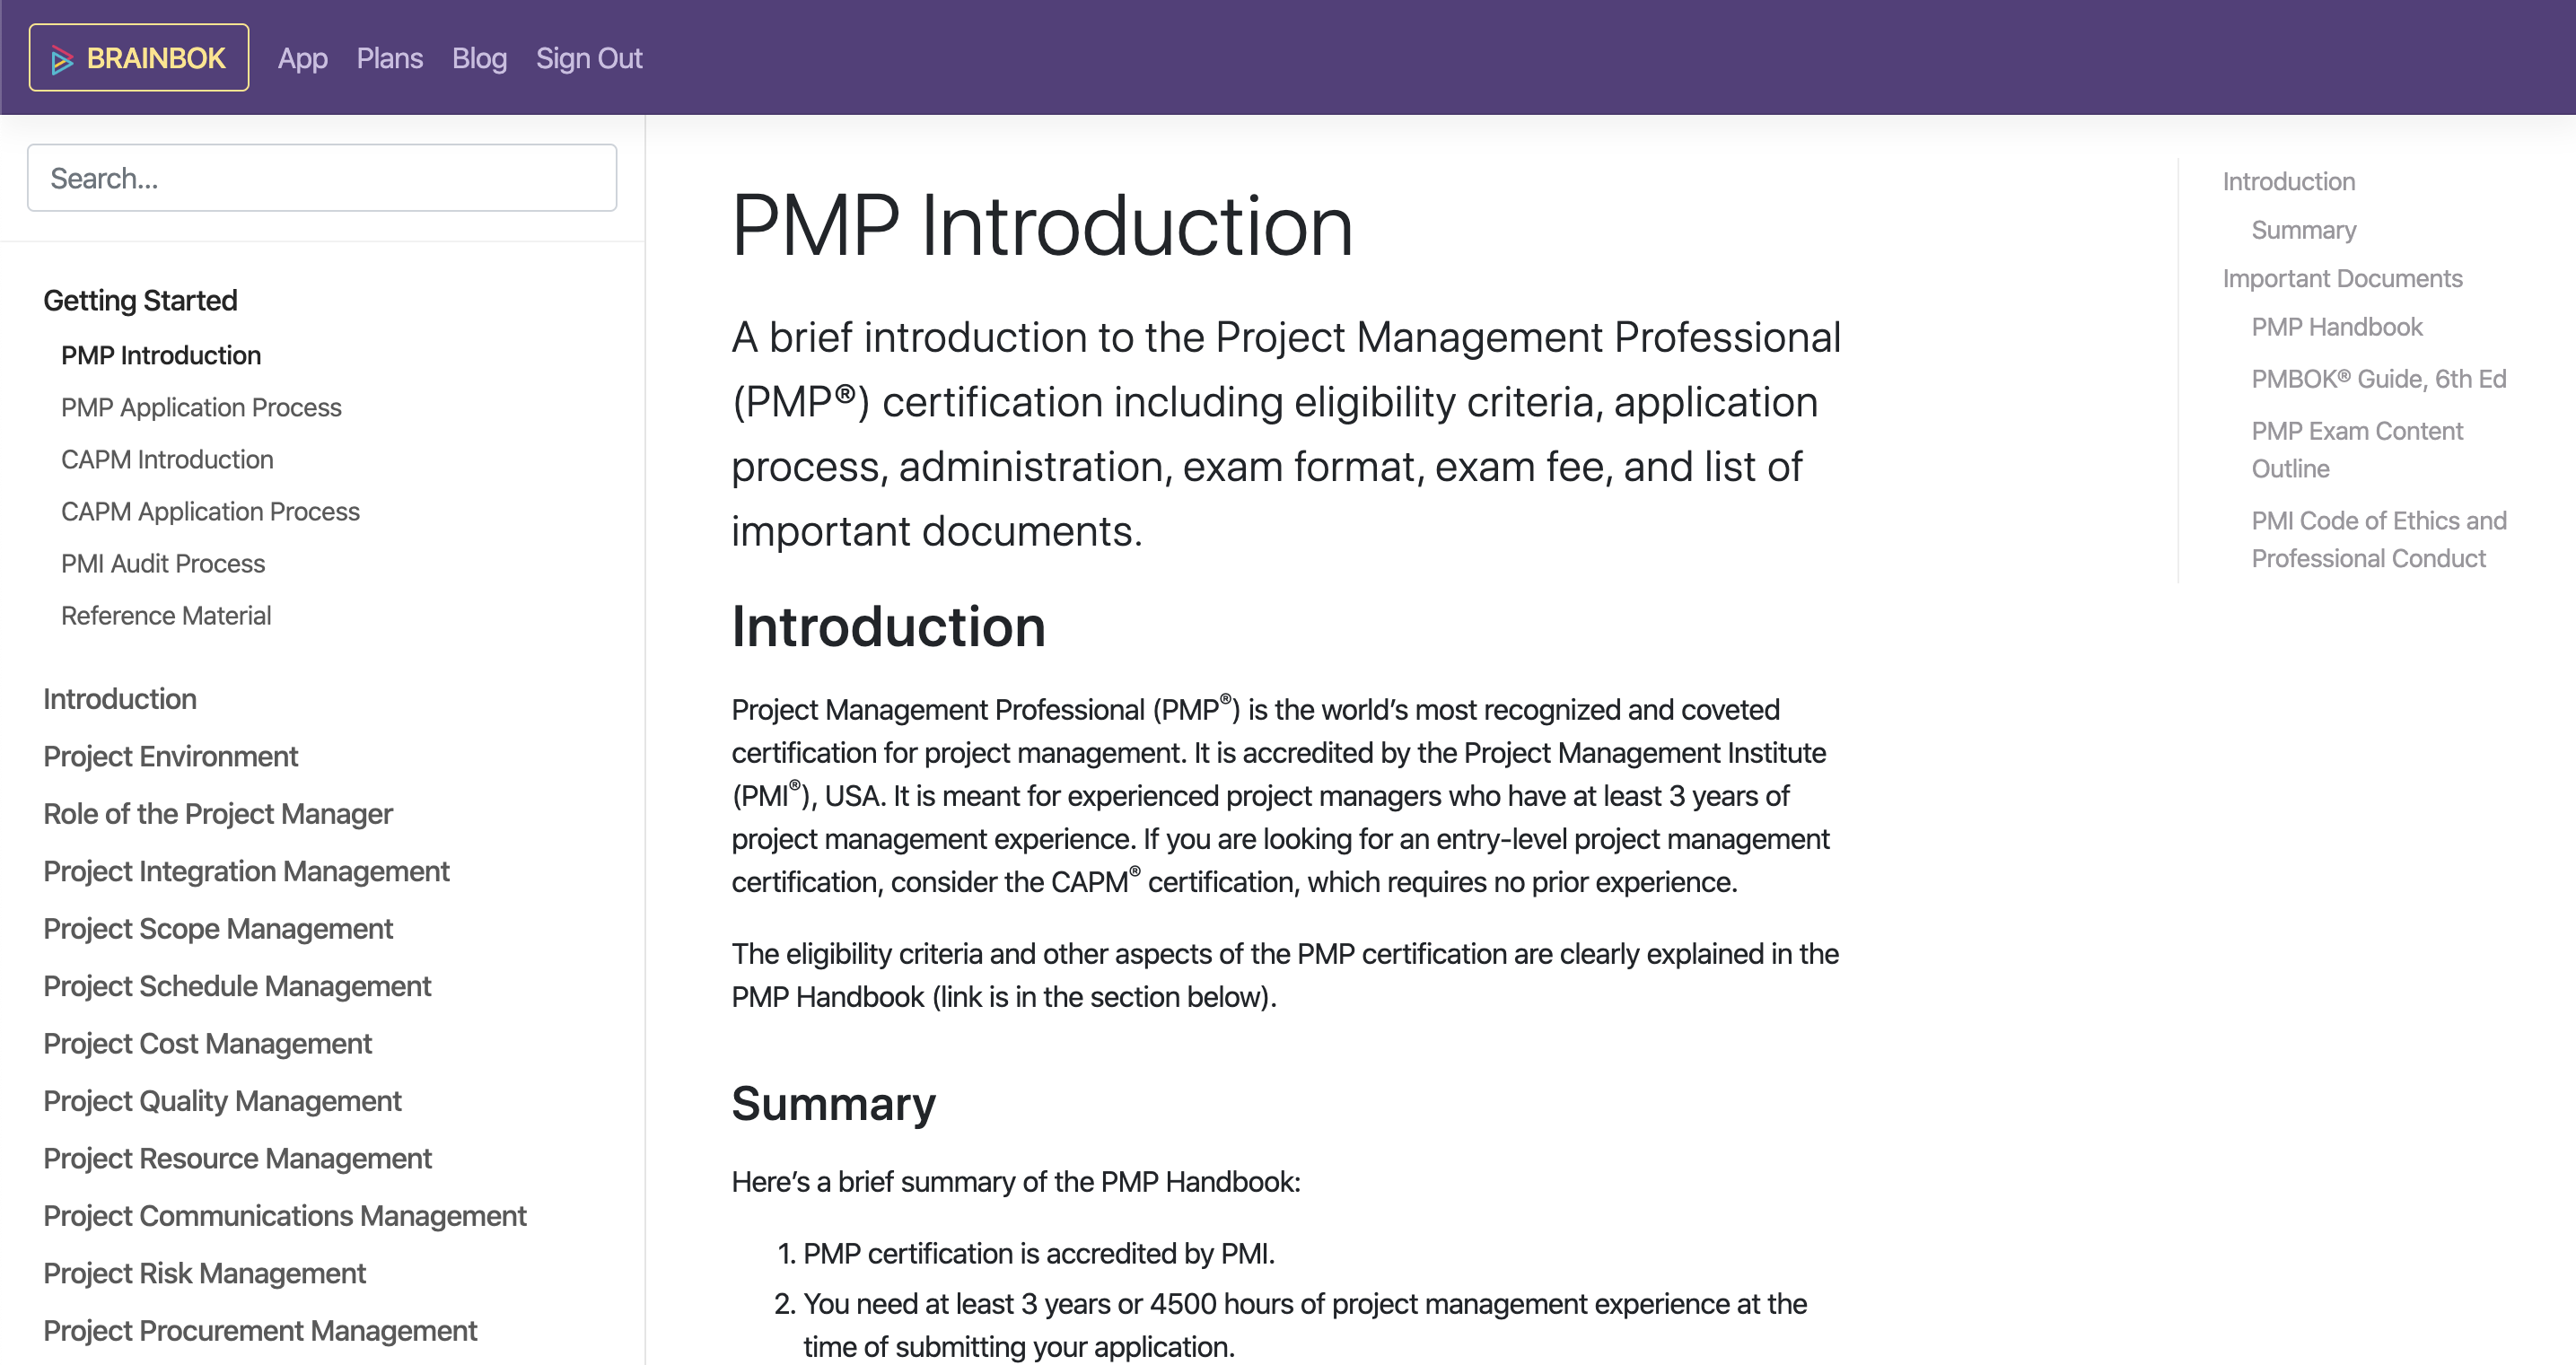 BrainBOK PM Study Guide for PMP and CAPM